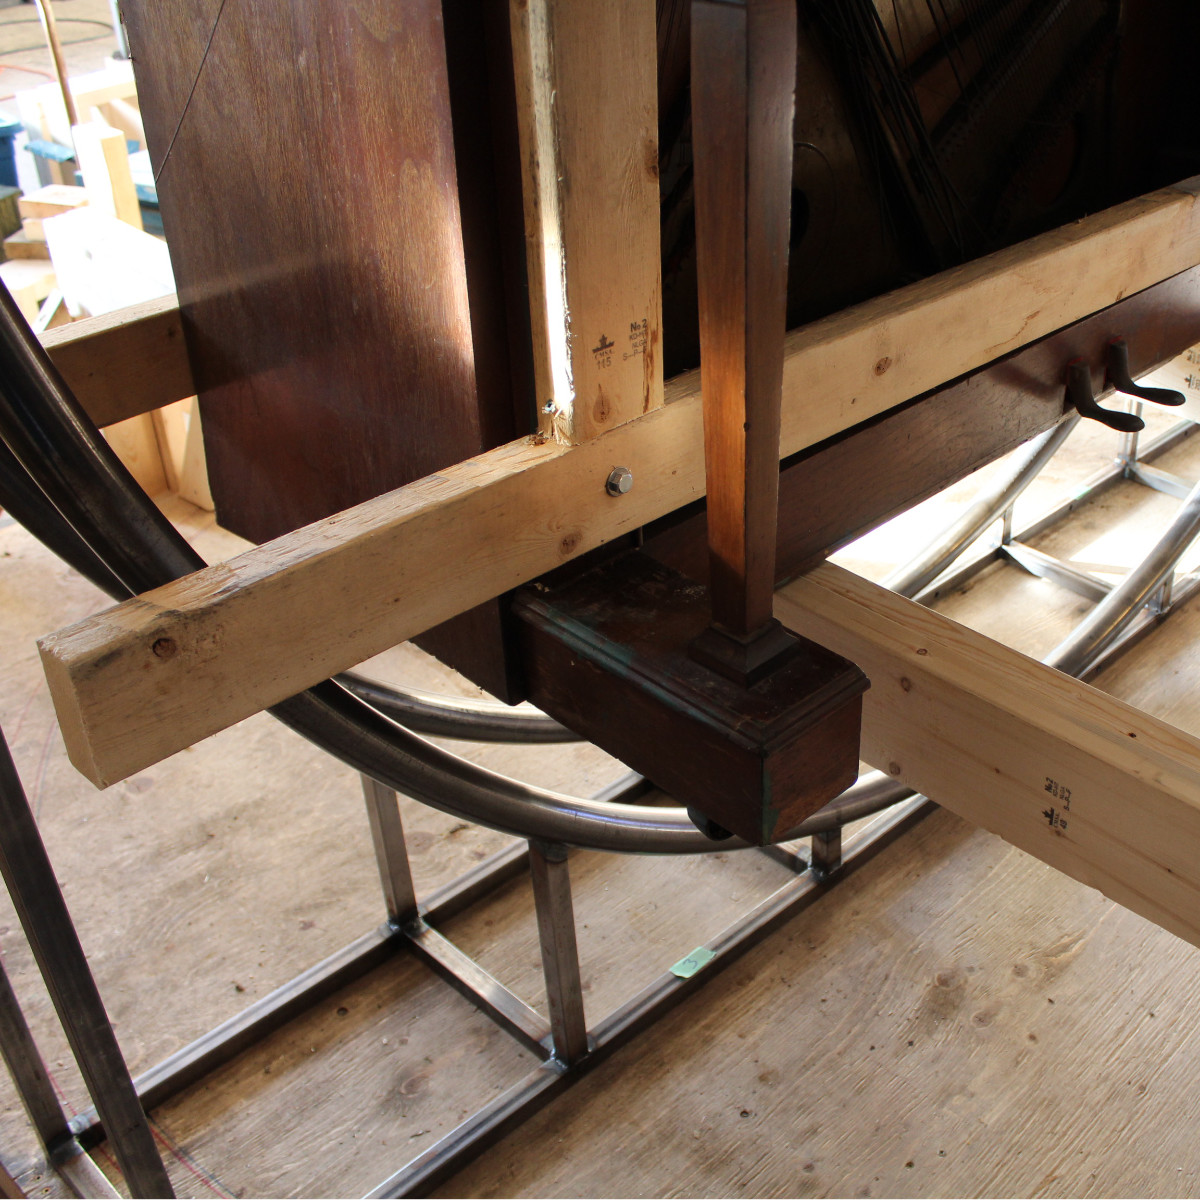 2x6s holding the piano up while working on the steel framework